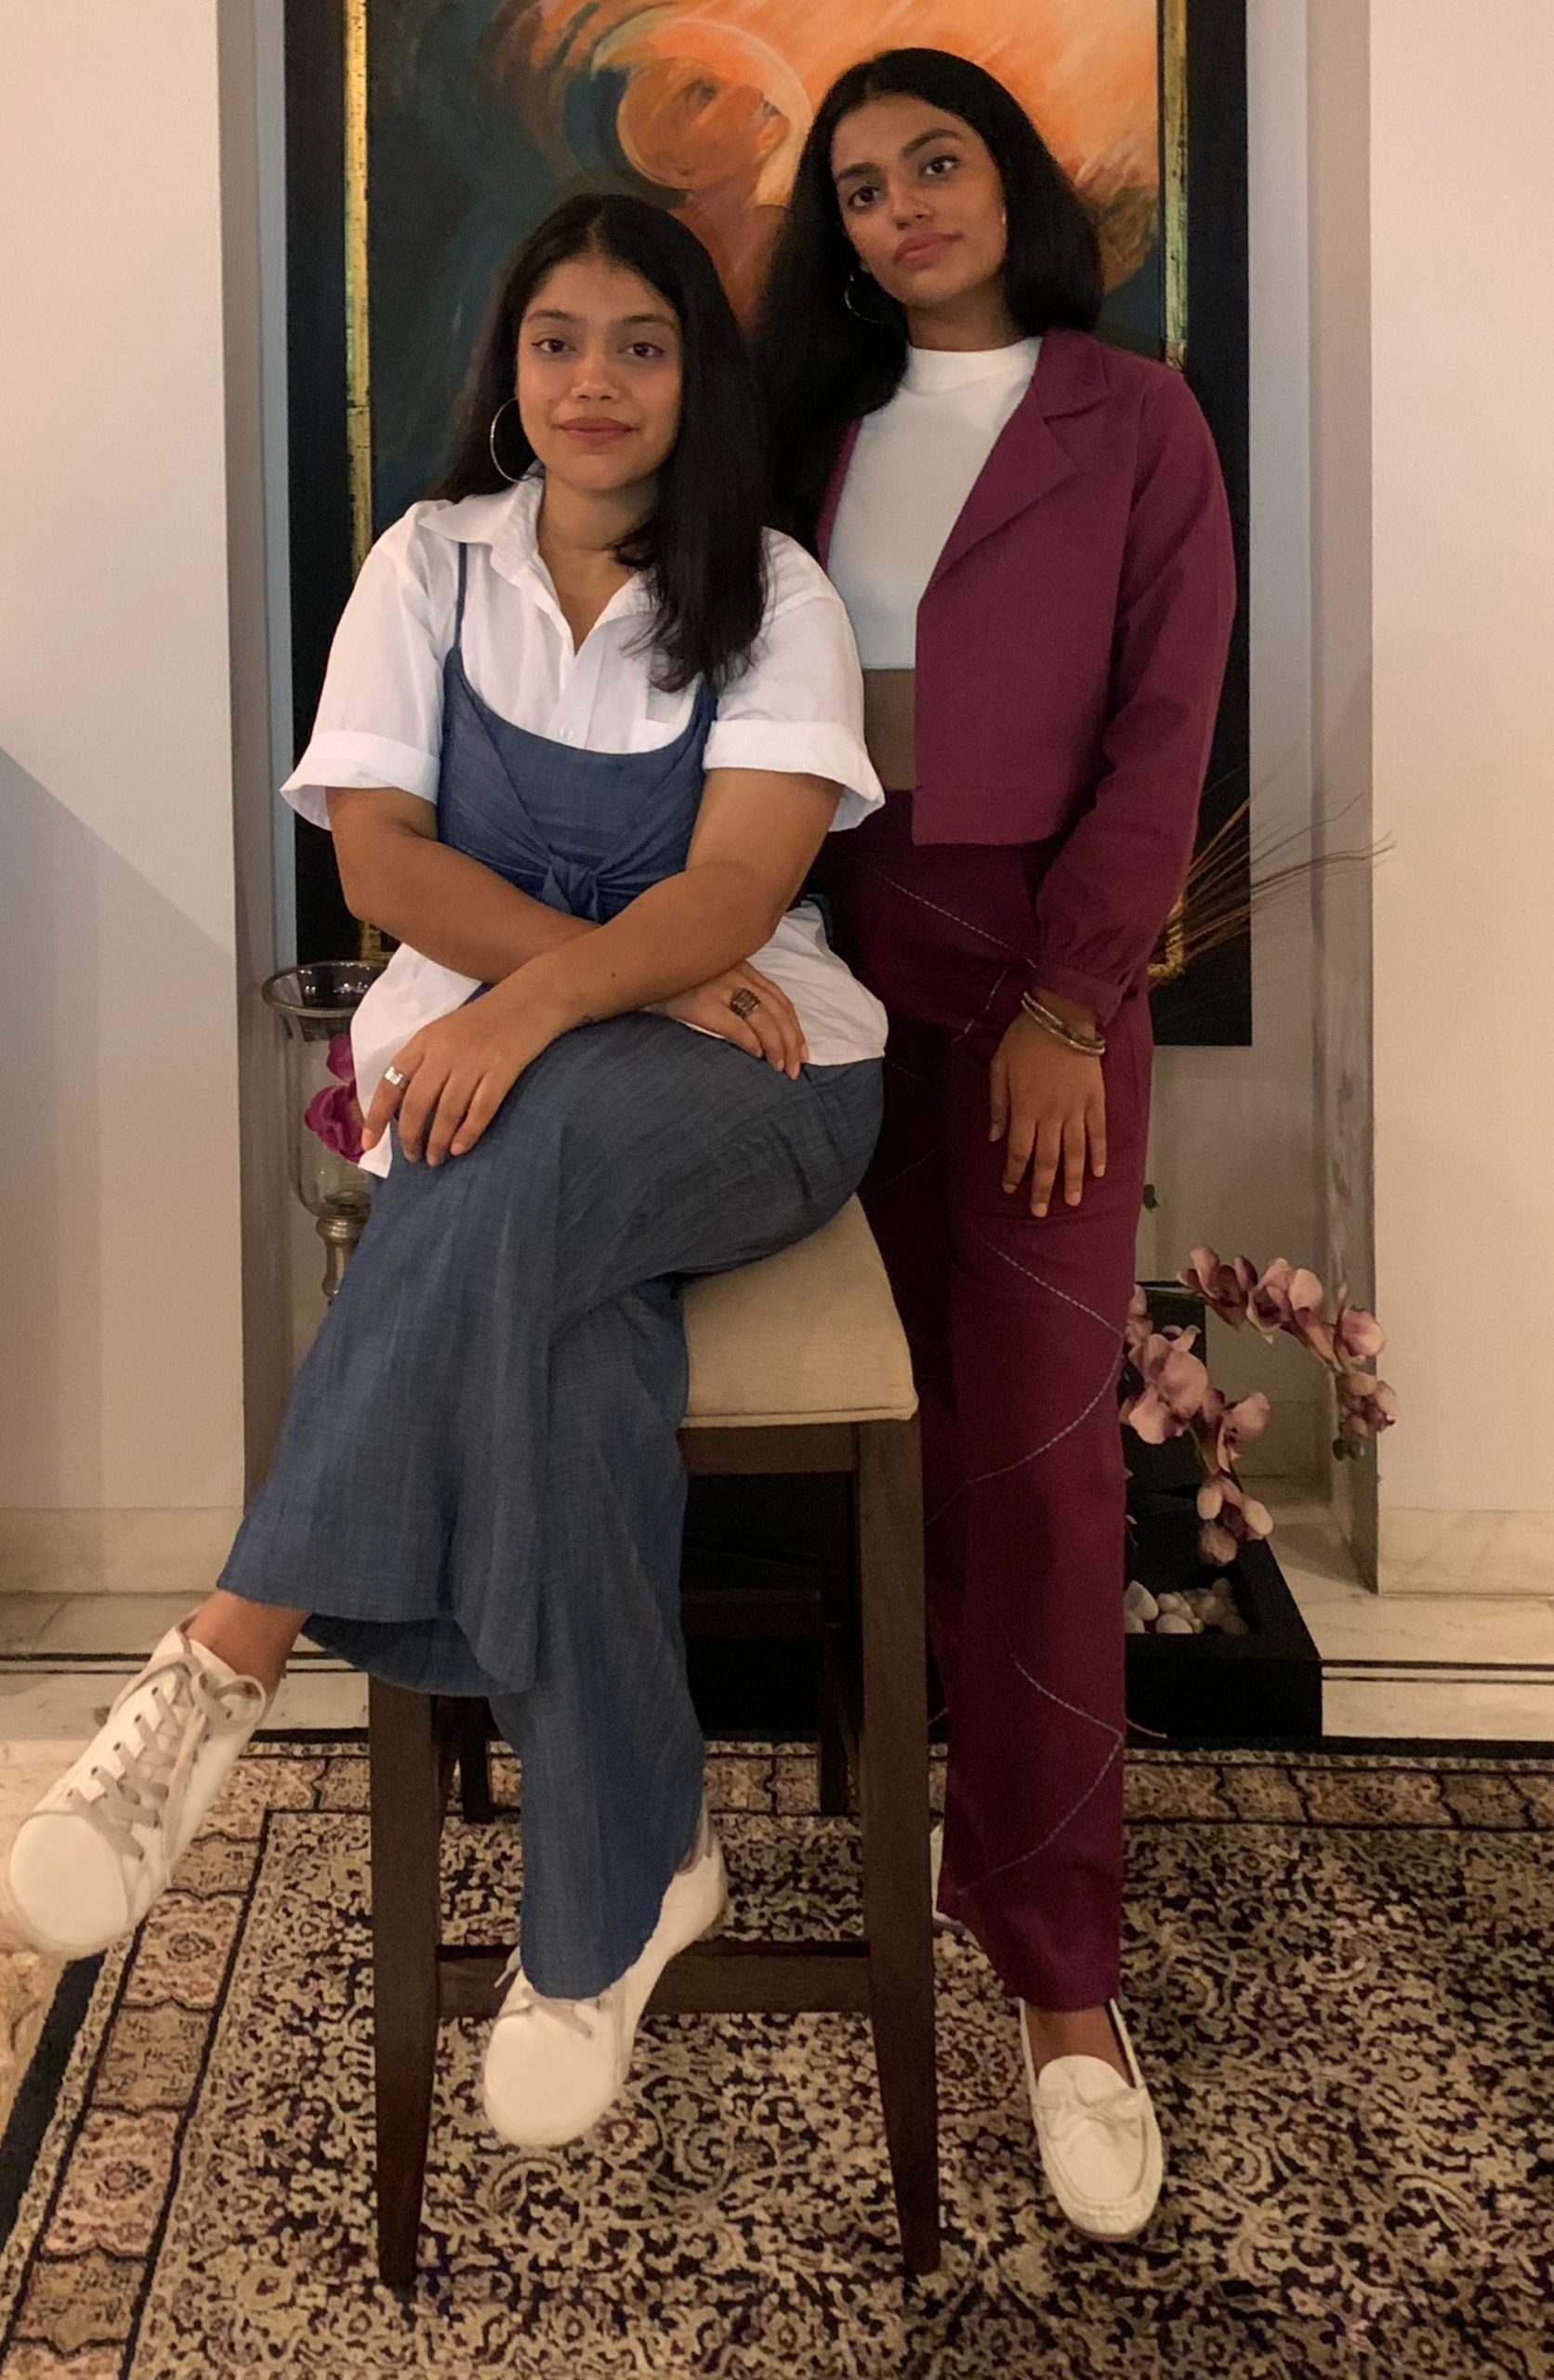 Ankita Bansal, the Breakout Star of Indian Matchmaking, Is Building a Denim Empire